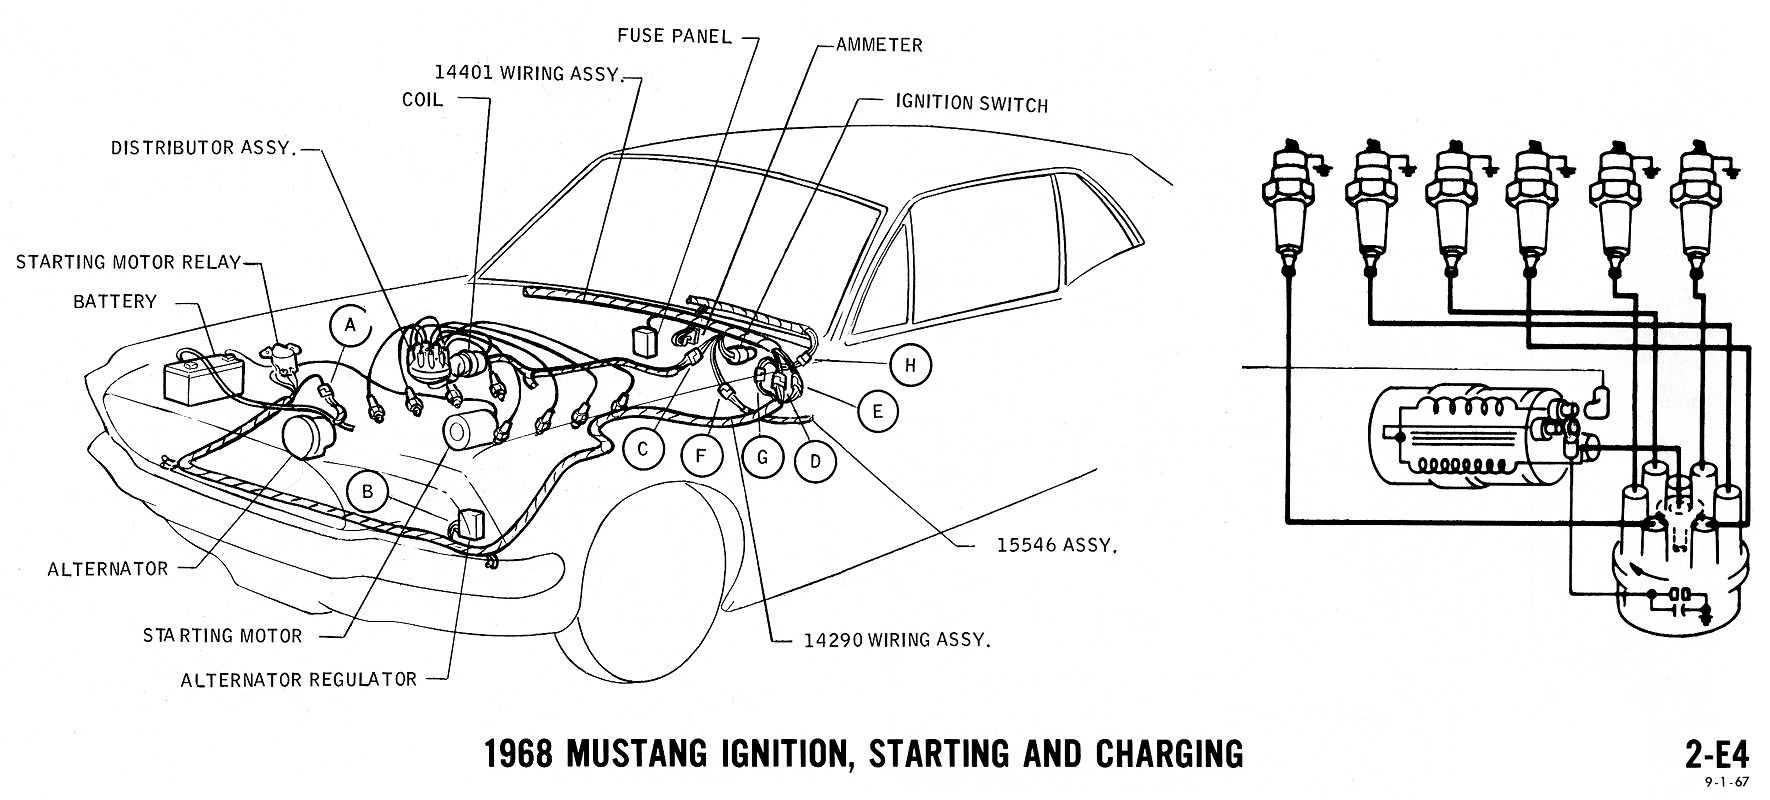 E4 1968 mustang wiring diagrams evolving software 65 mustang alternator wiring diagram at soozxer.org